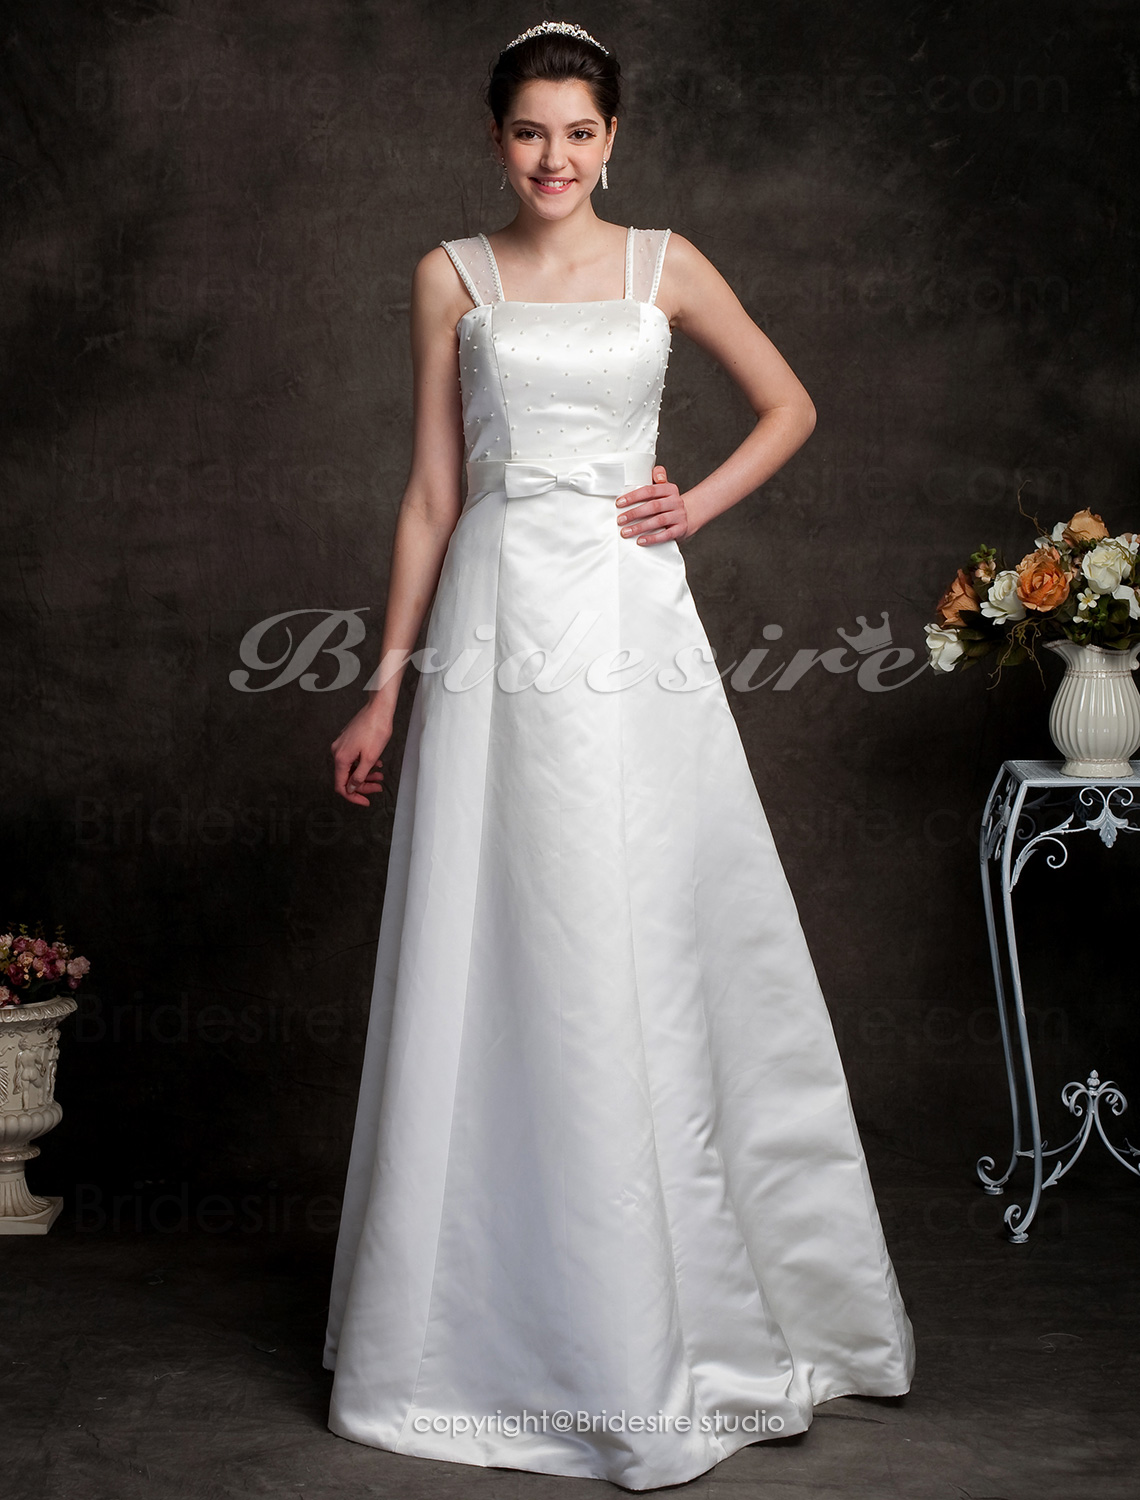 A-line Princess Satin Floor-length Wedding Dress with Bow